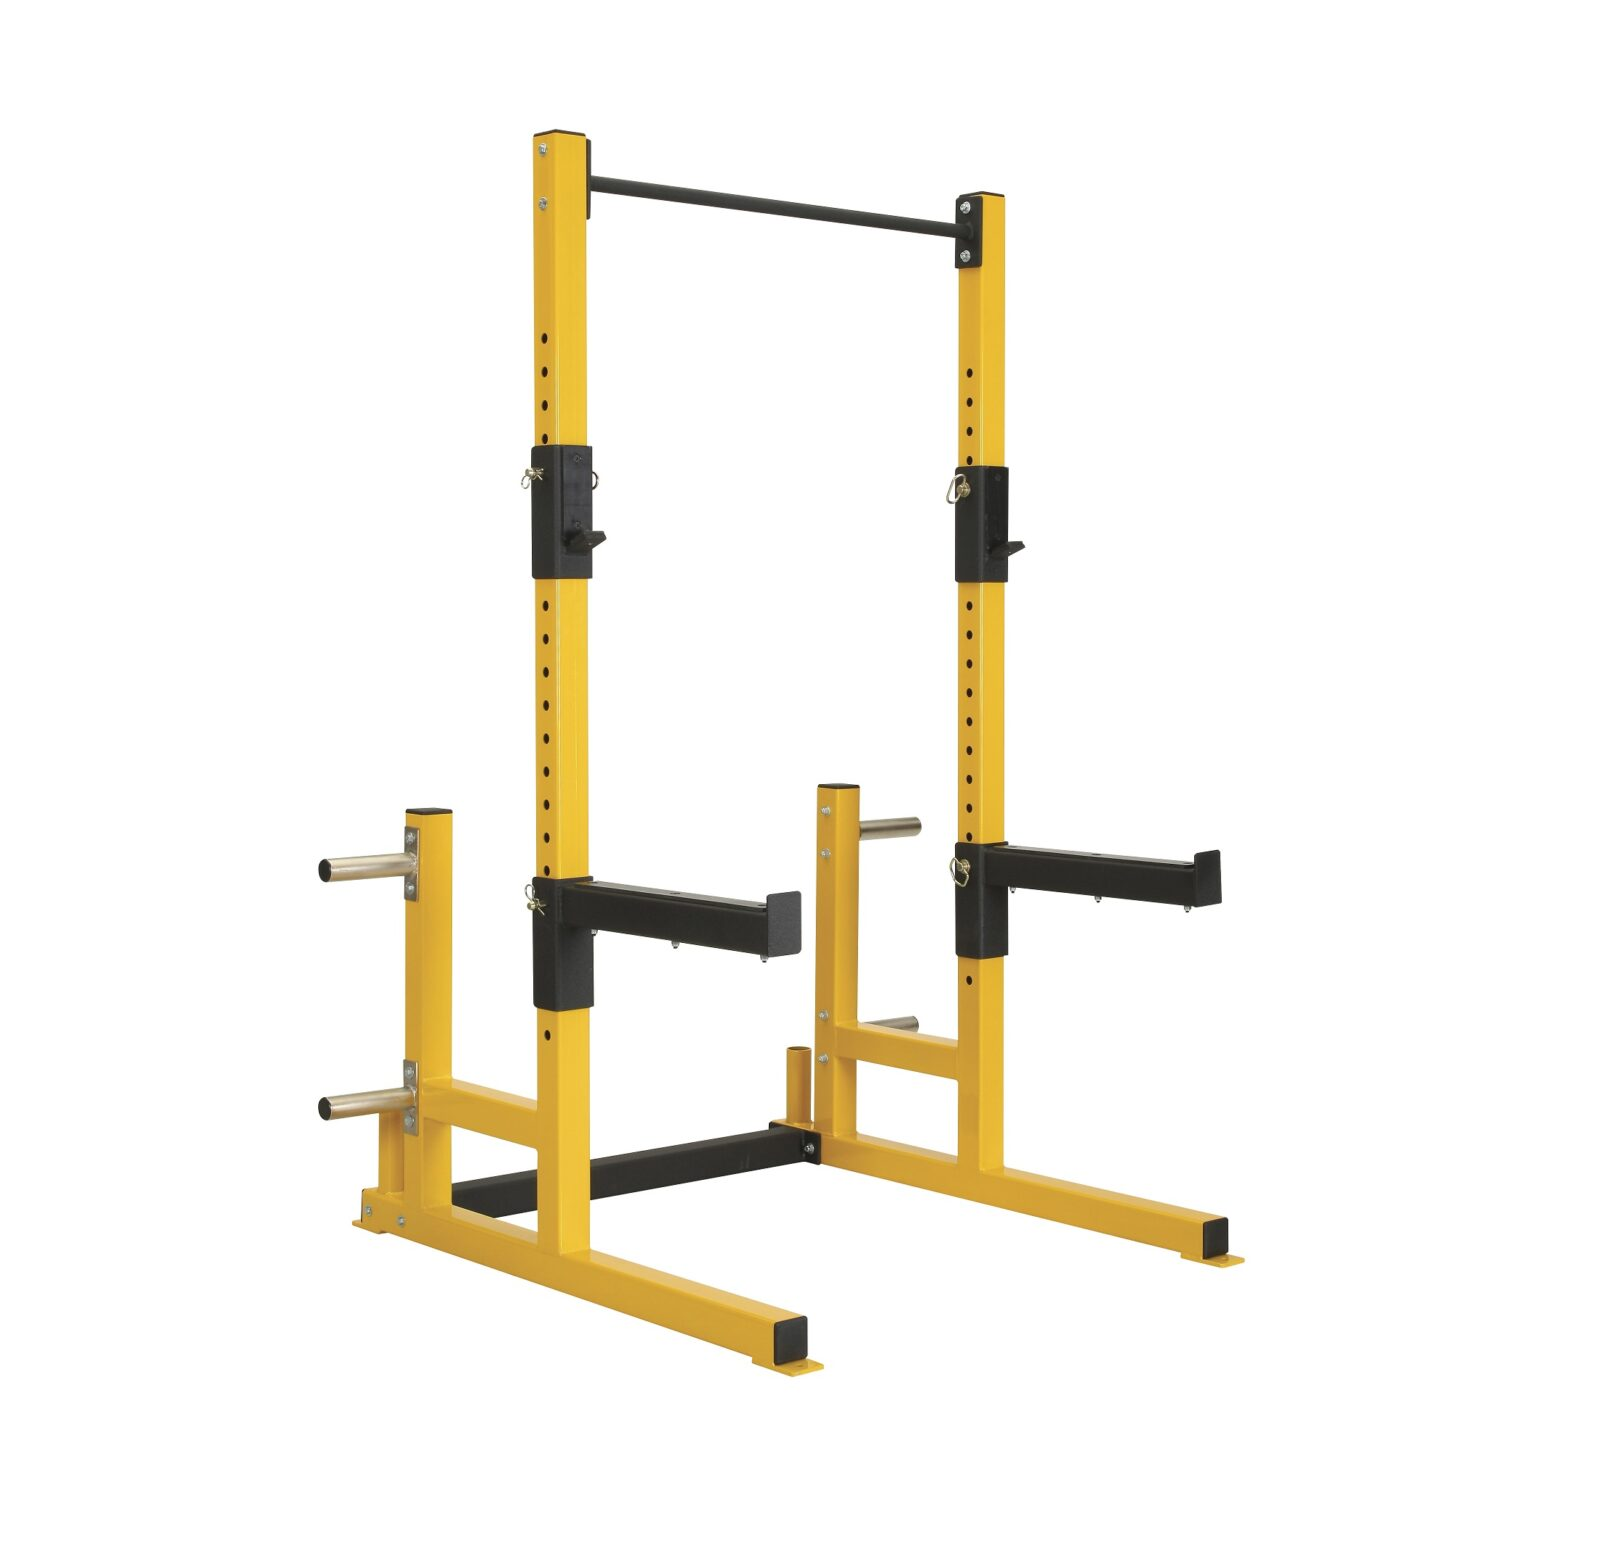 project diy homemade pin pinterest s alfredo projects wooden squat rack